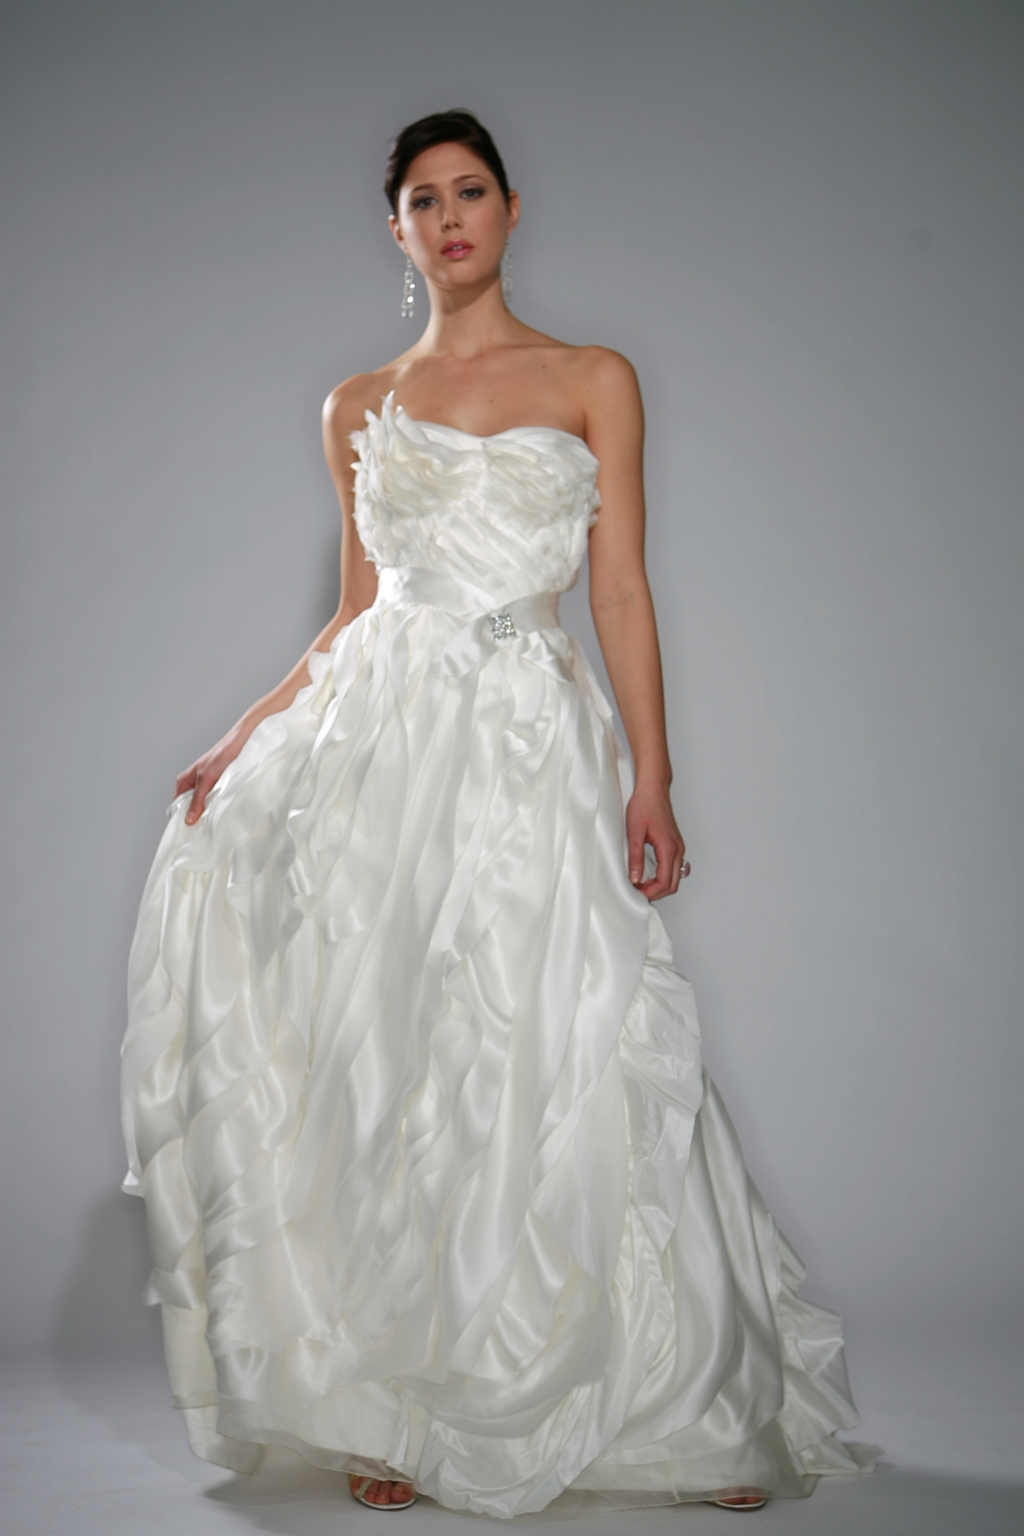 La-scala-white-strapless-dramatic-wedding-dress-sash-at-waist-rhinestone-detail.full